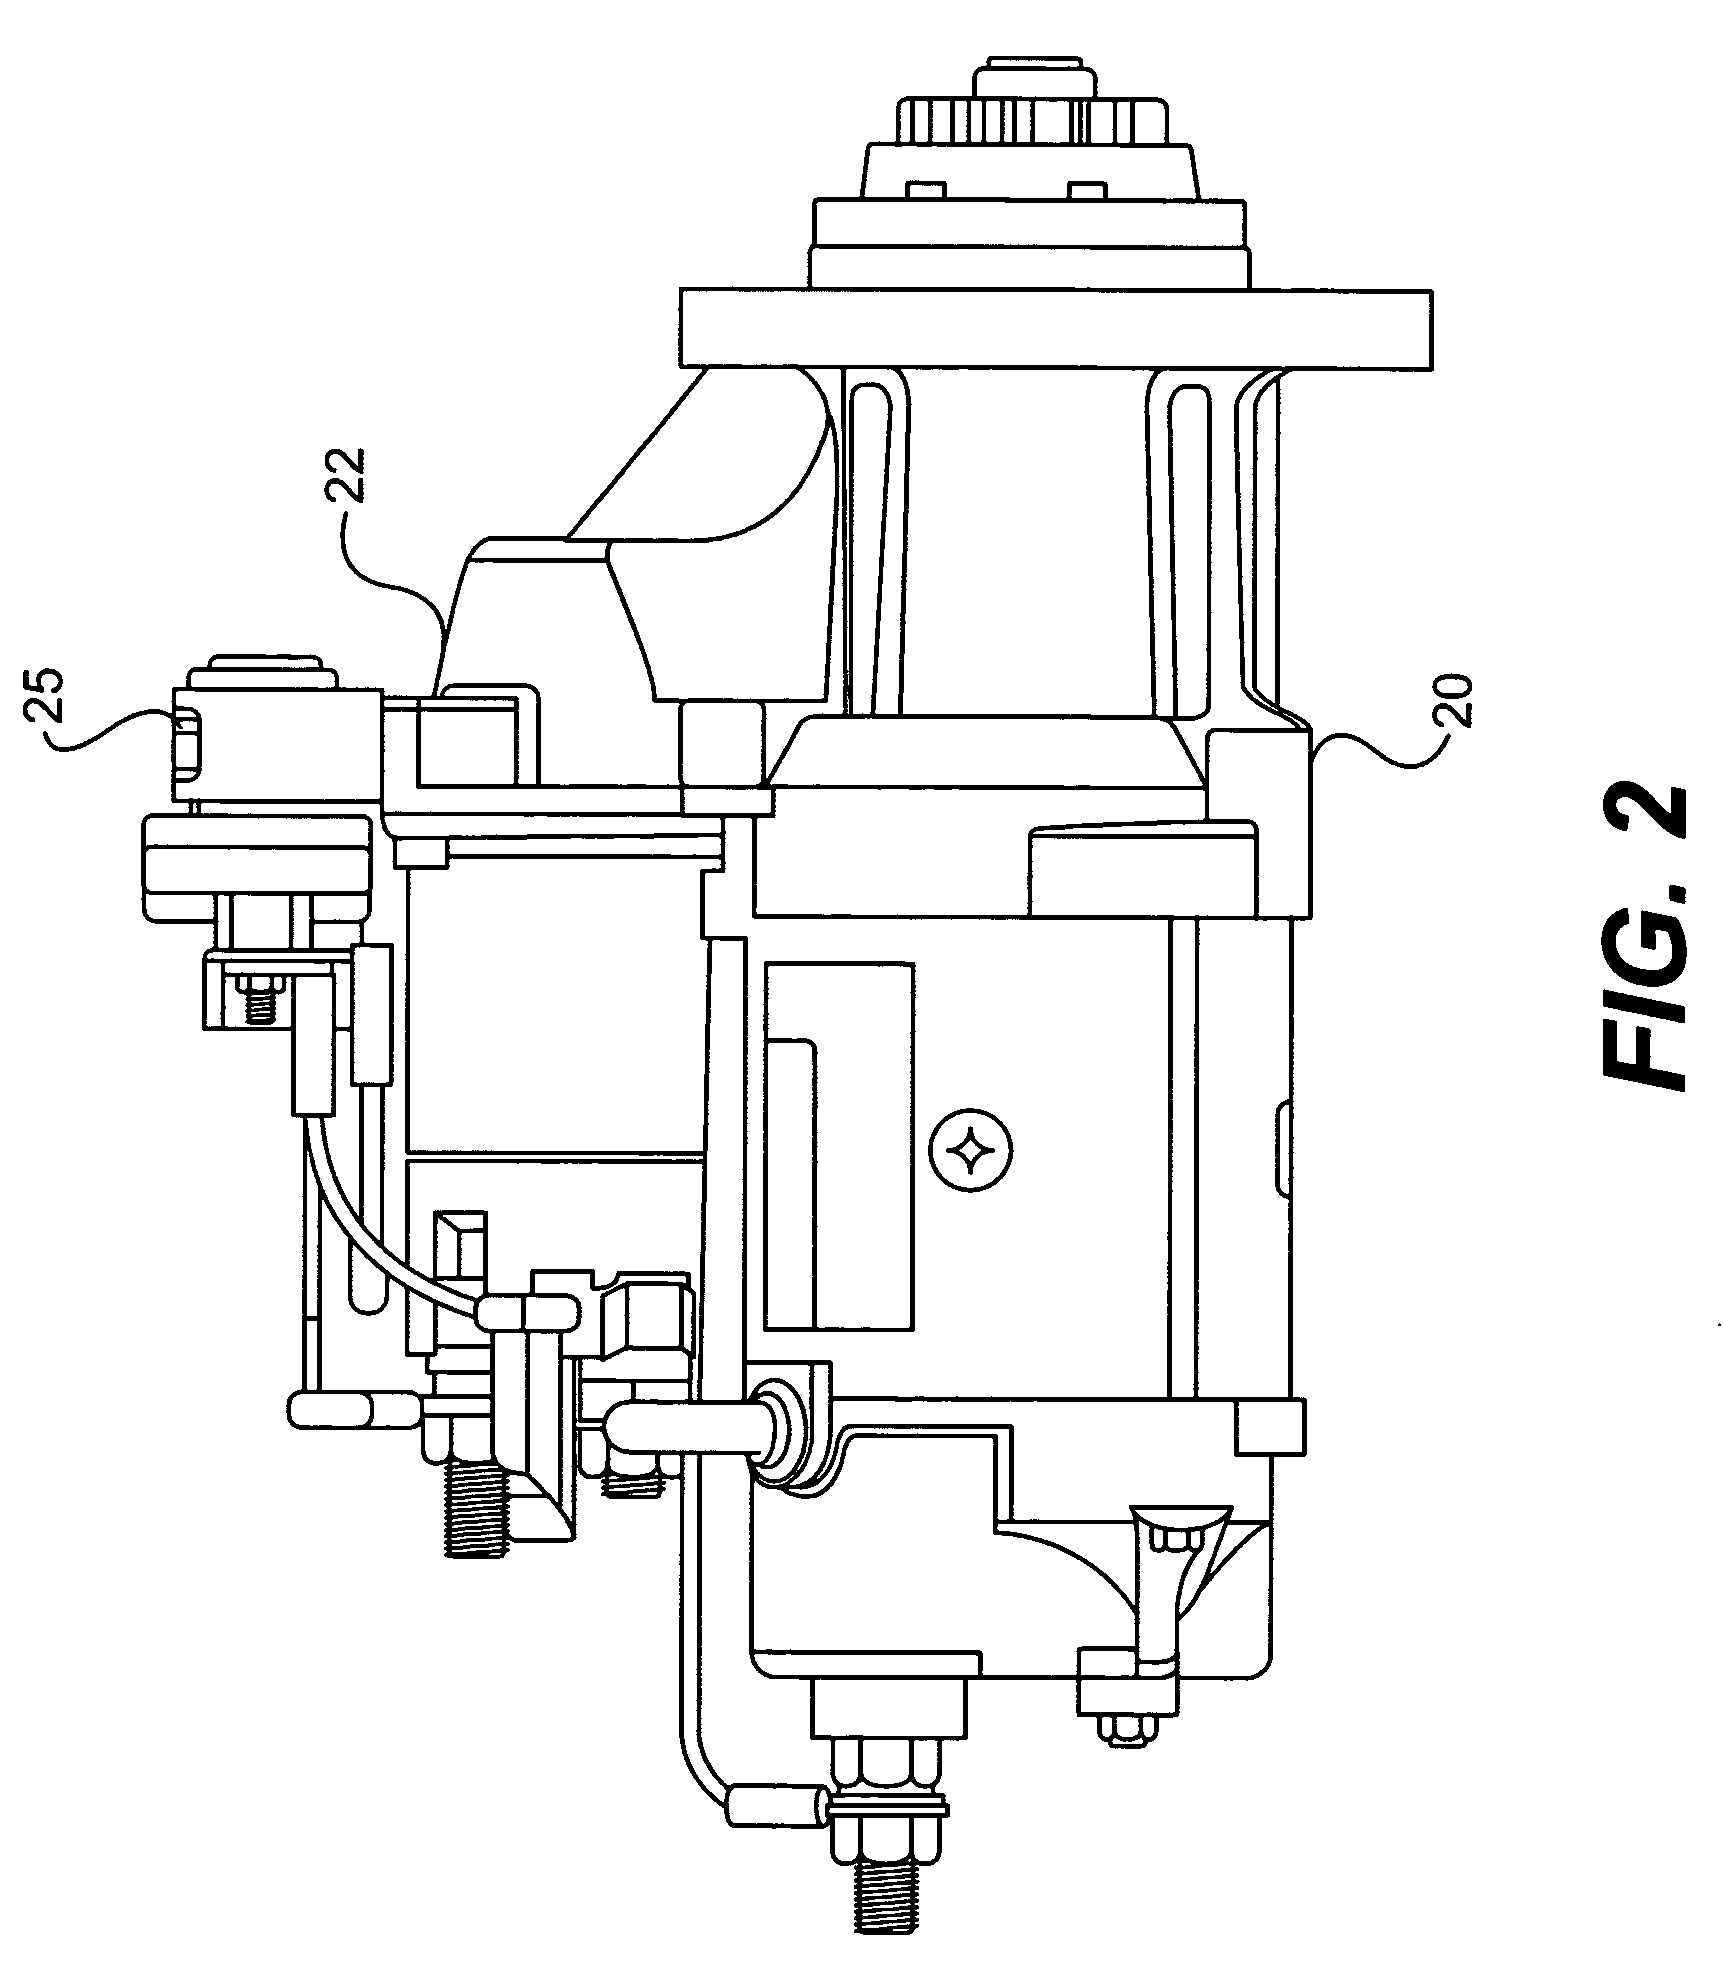 patent us7986053 24 volt engine start up system google patents patent drawing